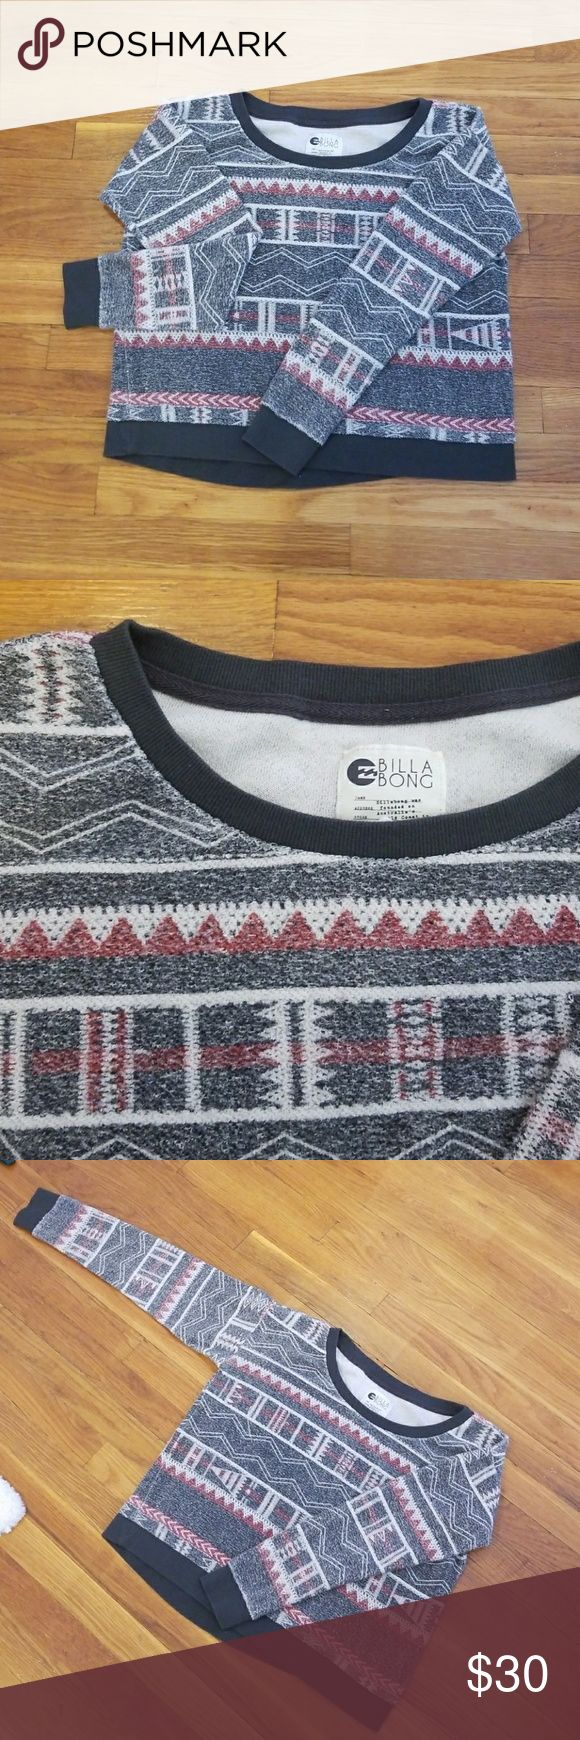 Billabong tribal print sweater Adorable tribal print sweater! Great material featuring terry cloth texture. In great condition Billabong Sweaters Crew & Scoop Necks